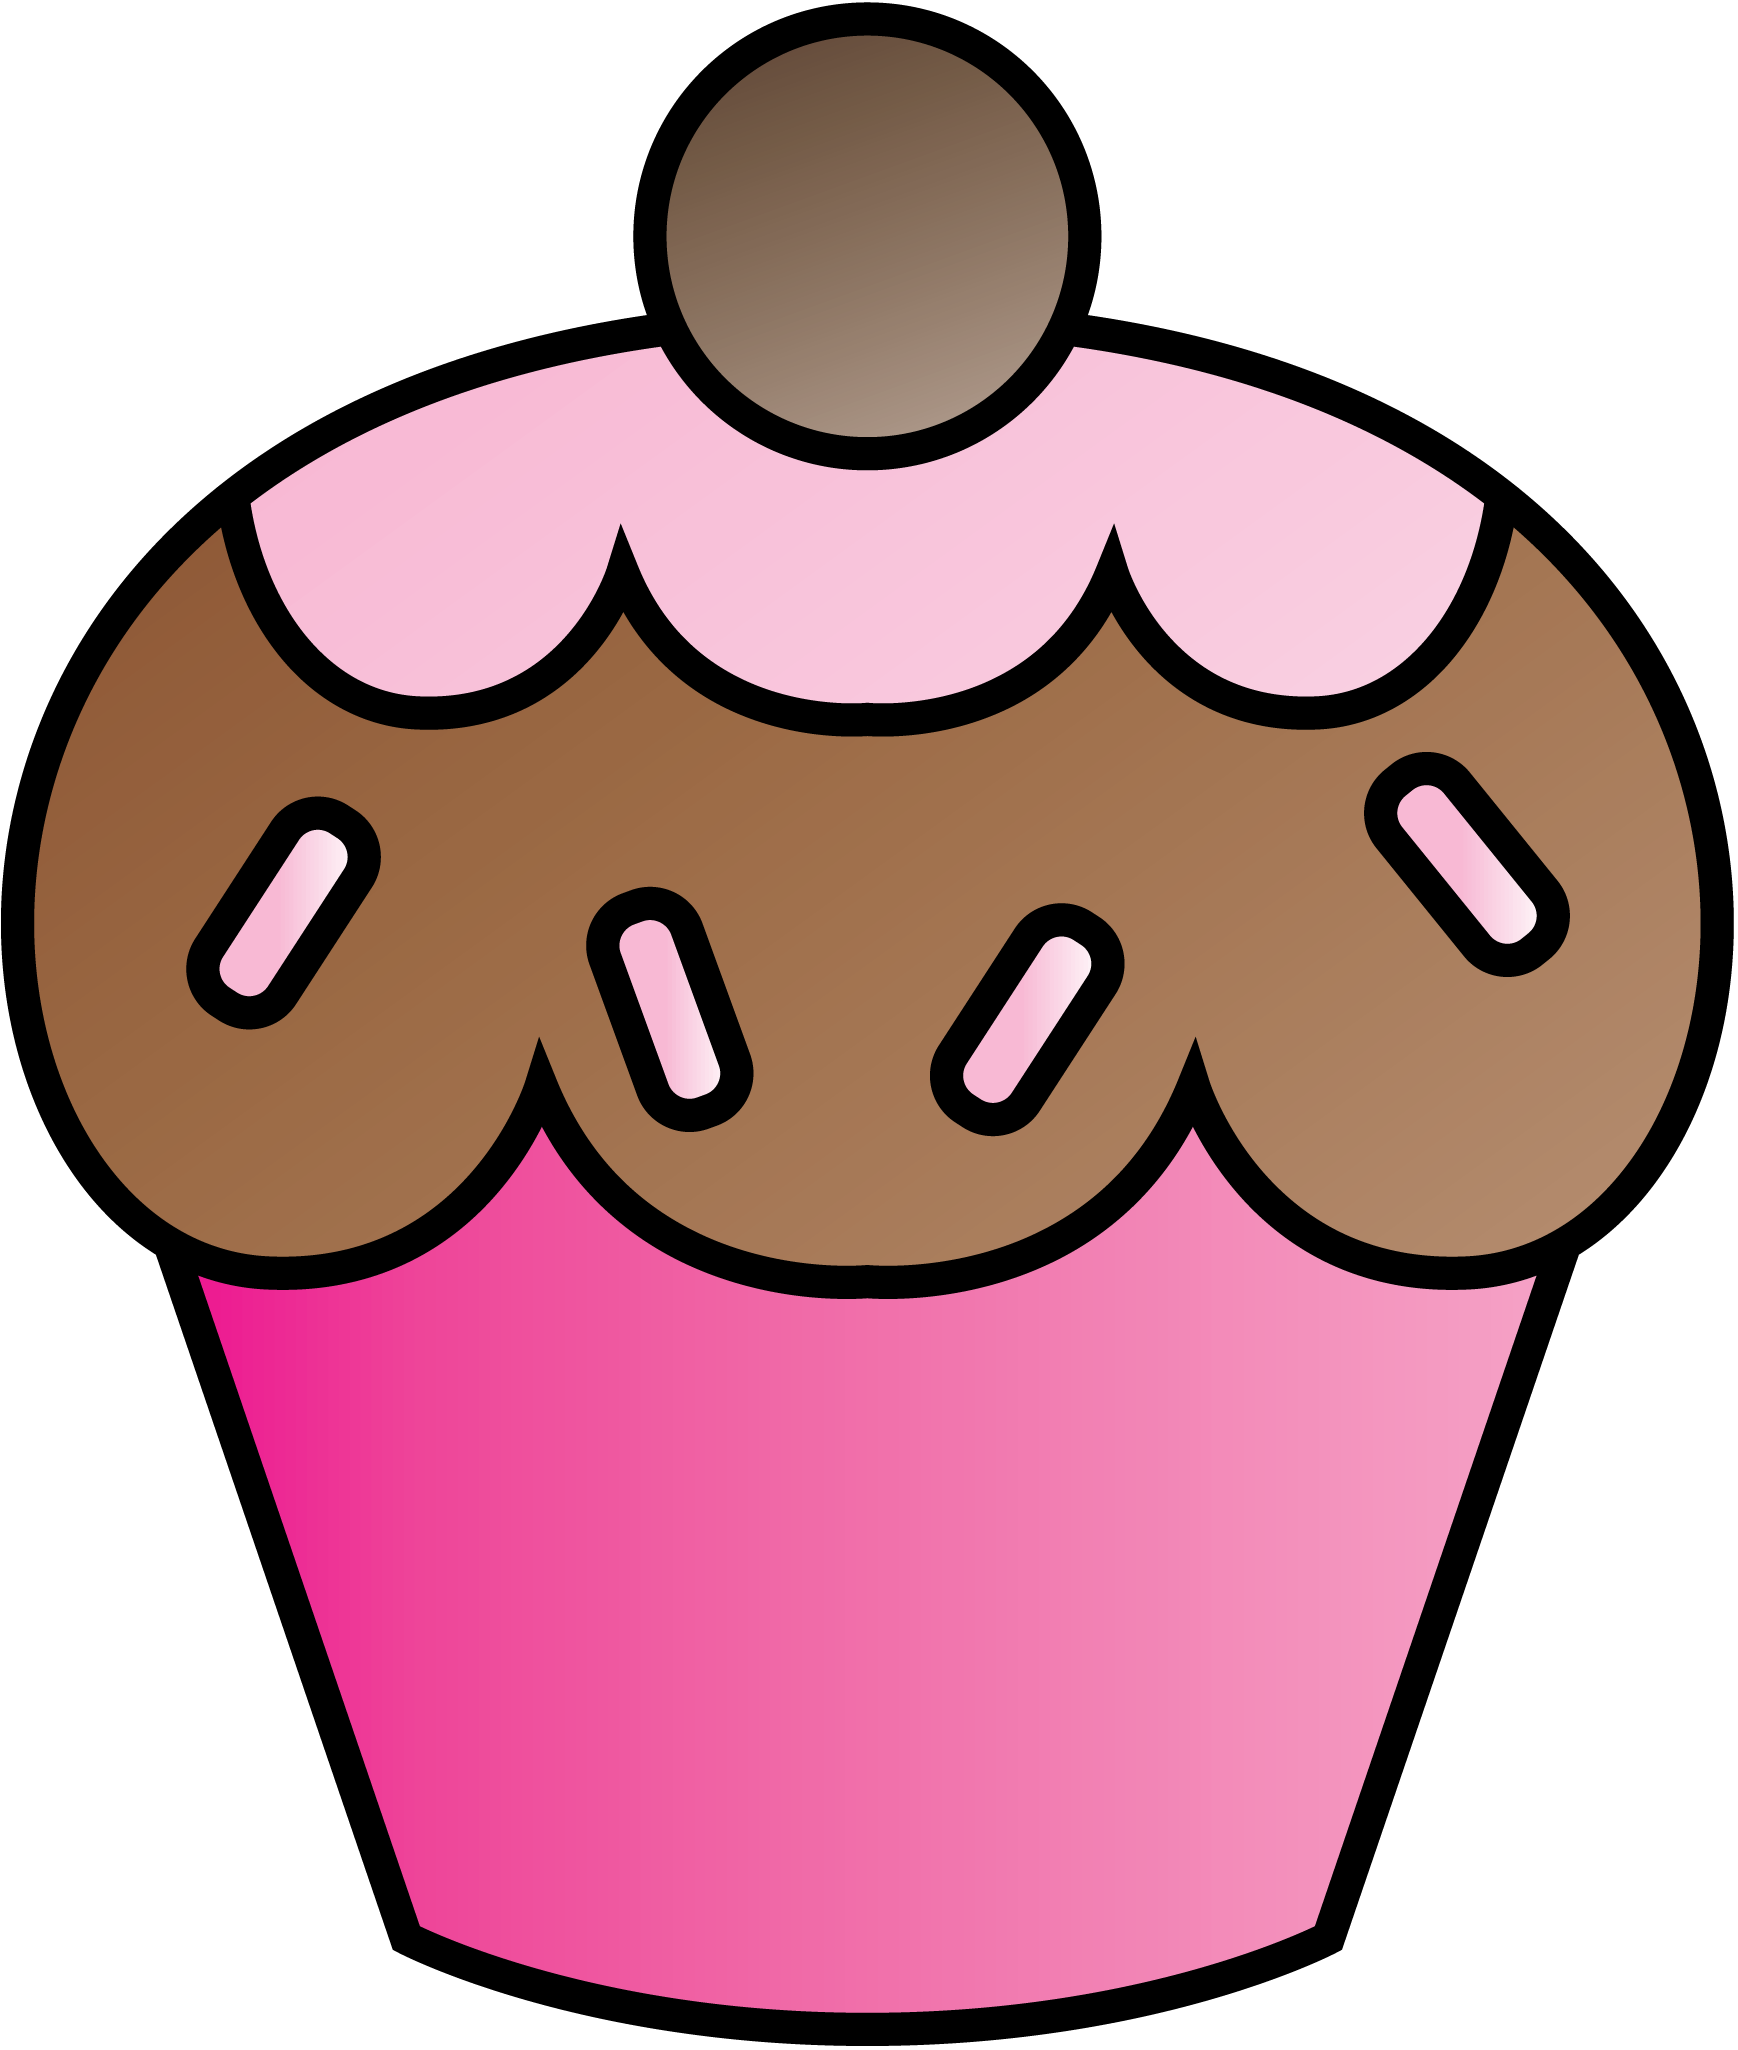 Cupcakes clipart border free clipart images 2.